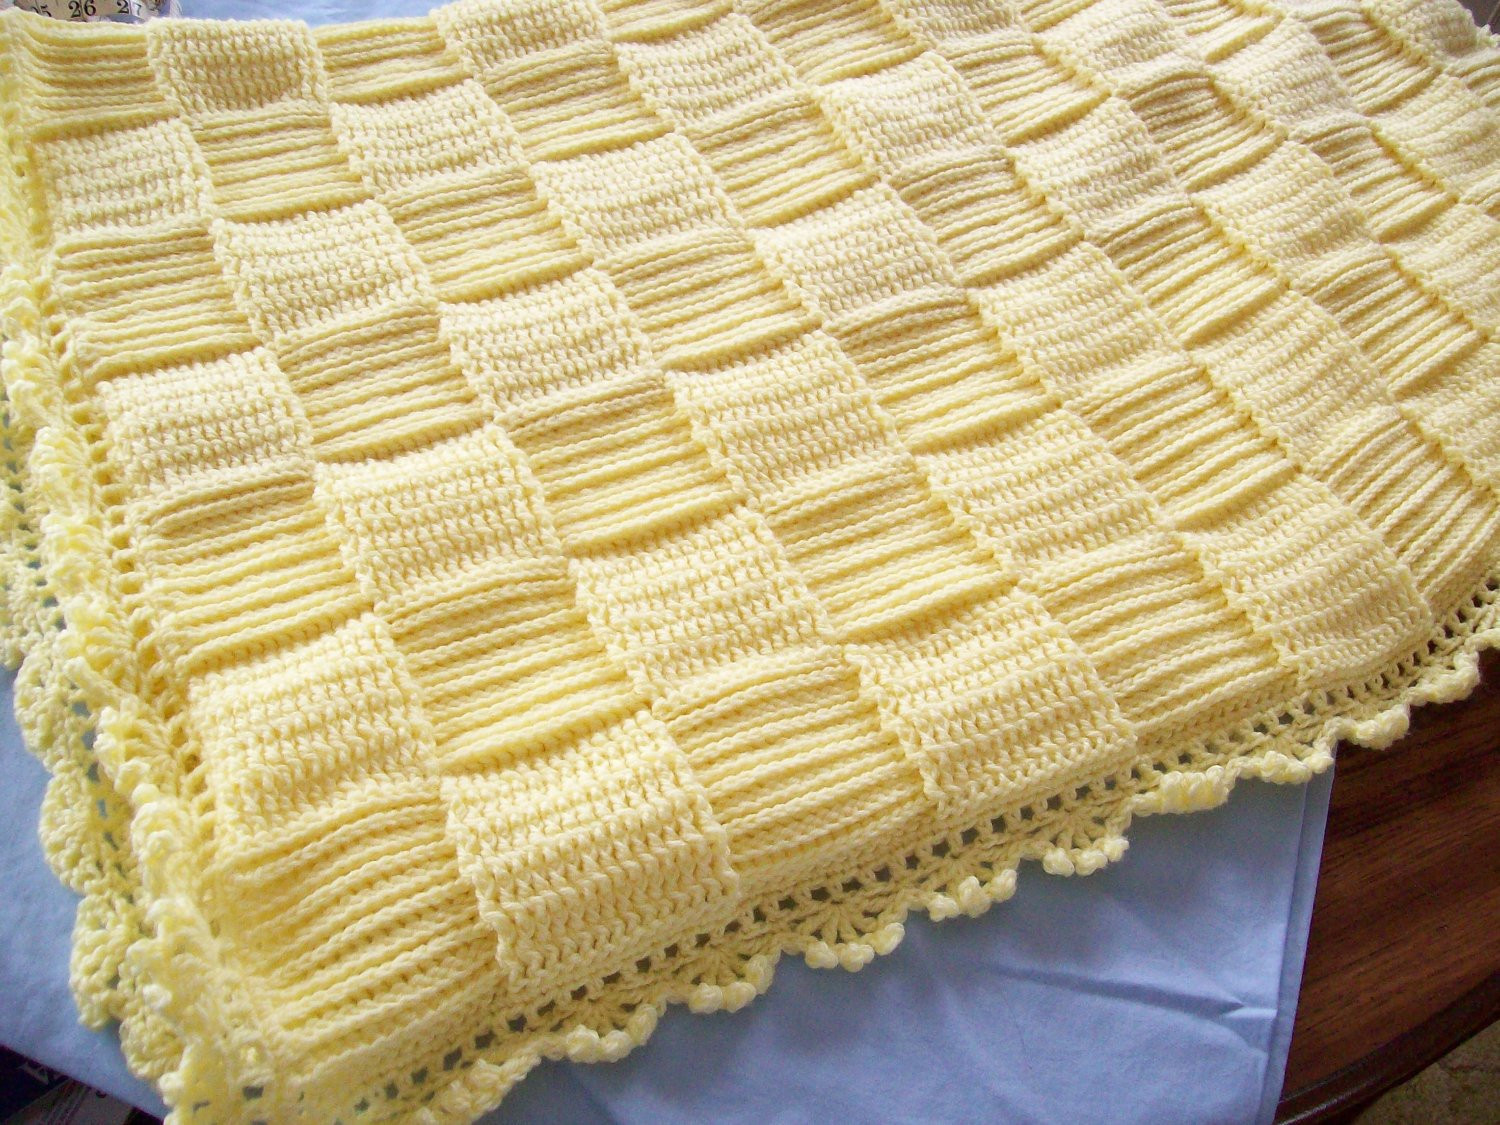 Fresh Hand Crocheted Yellow Basket Weave Baby Blanket Free Shipping Basket Weave Crochet Baby Blanket Of Brilliant 46 Photos Basket Weave Crochet Baby Blanket